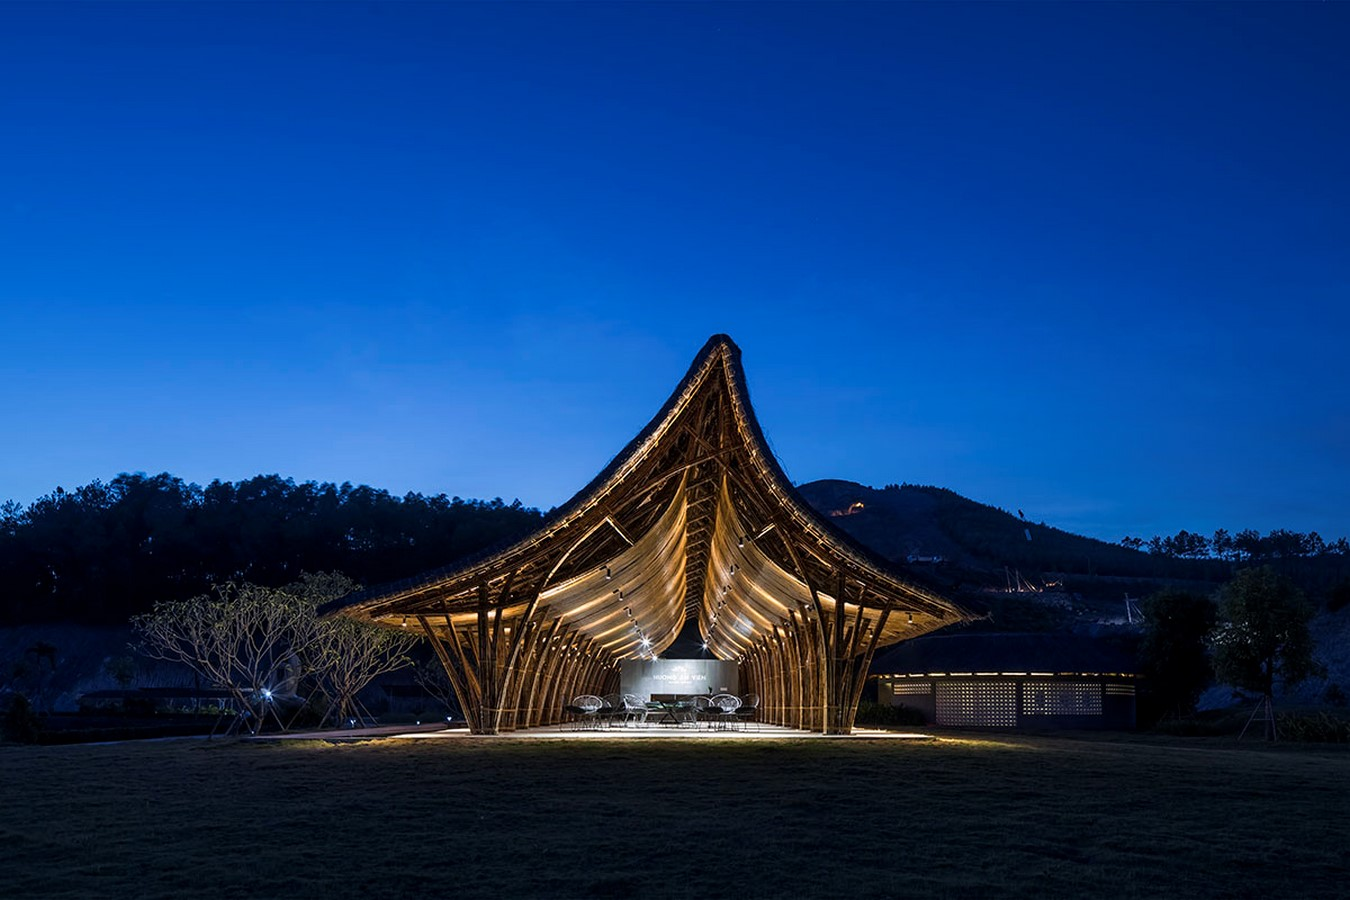 Visiting Center For Huong An Vien Cemetery created by VTN Architects - Sheet10